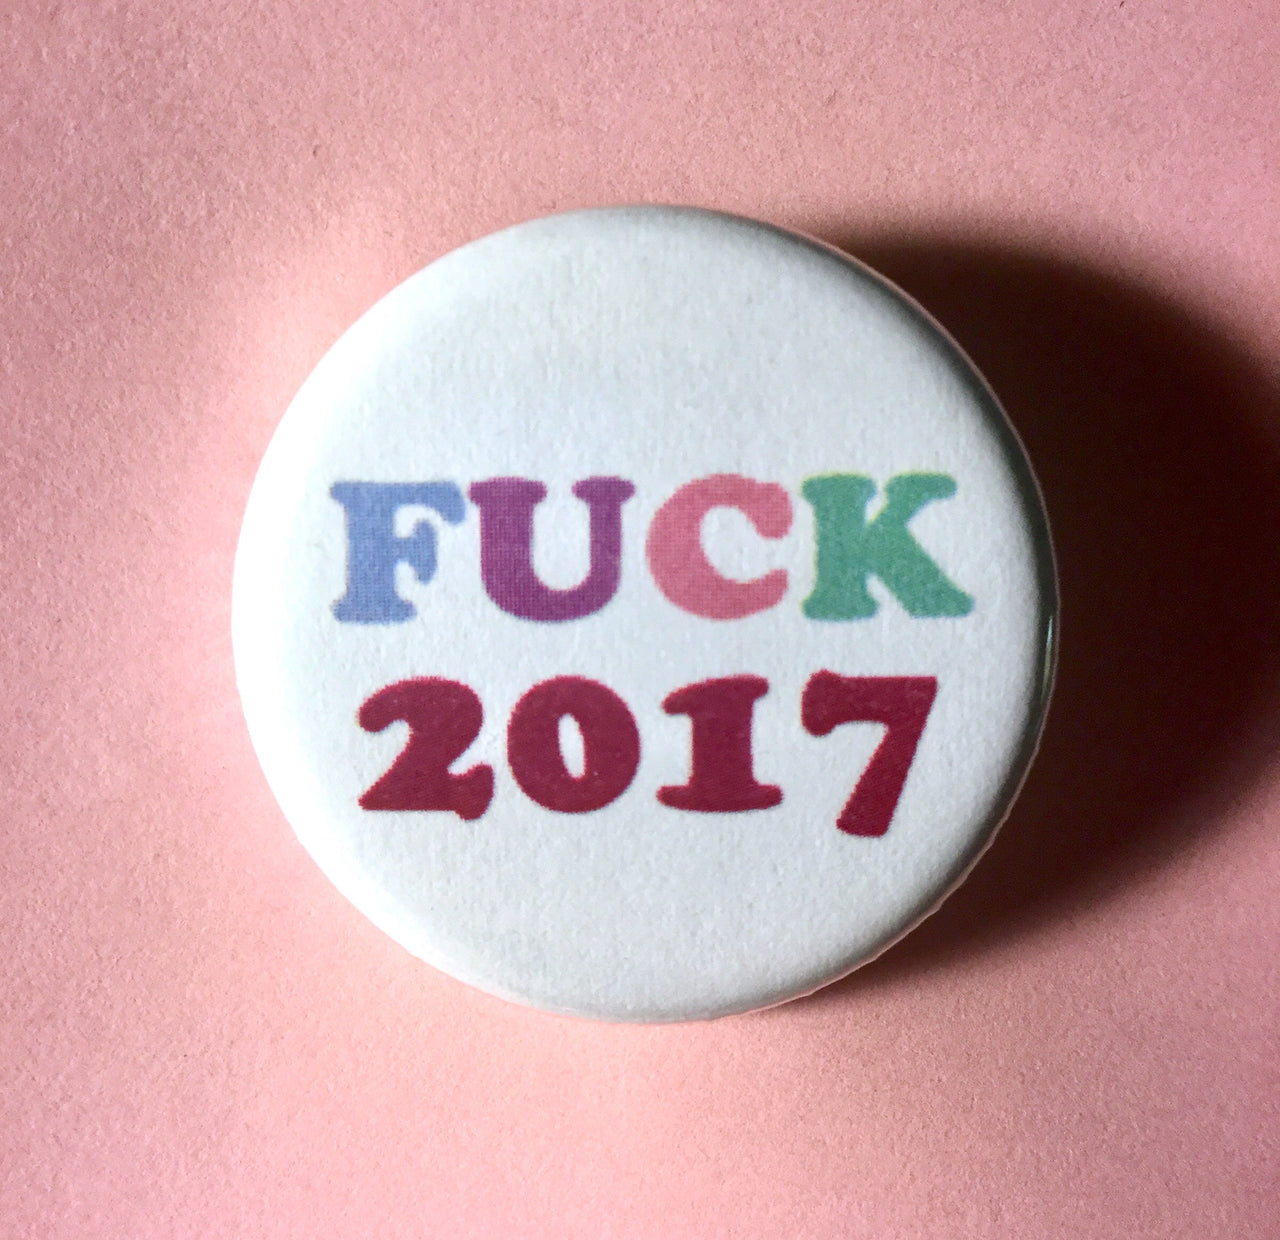 Fuck 2017 - Radical Buttons